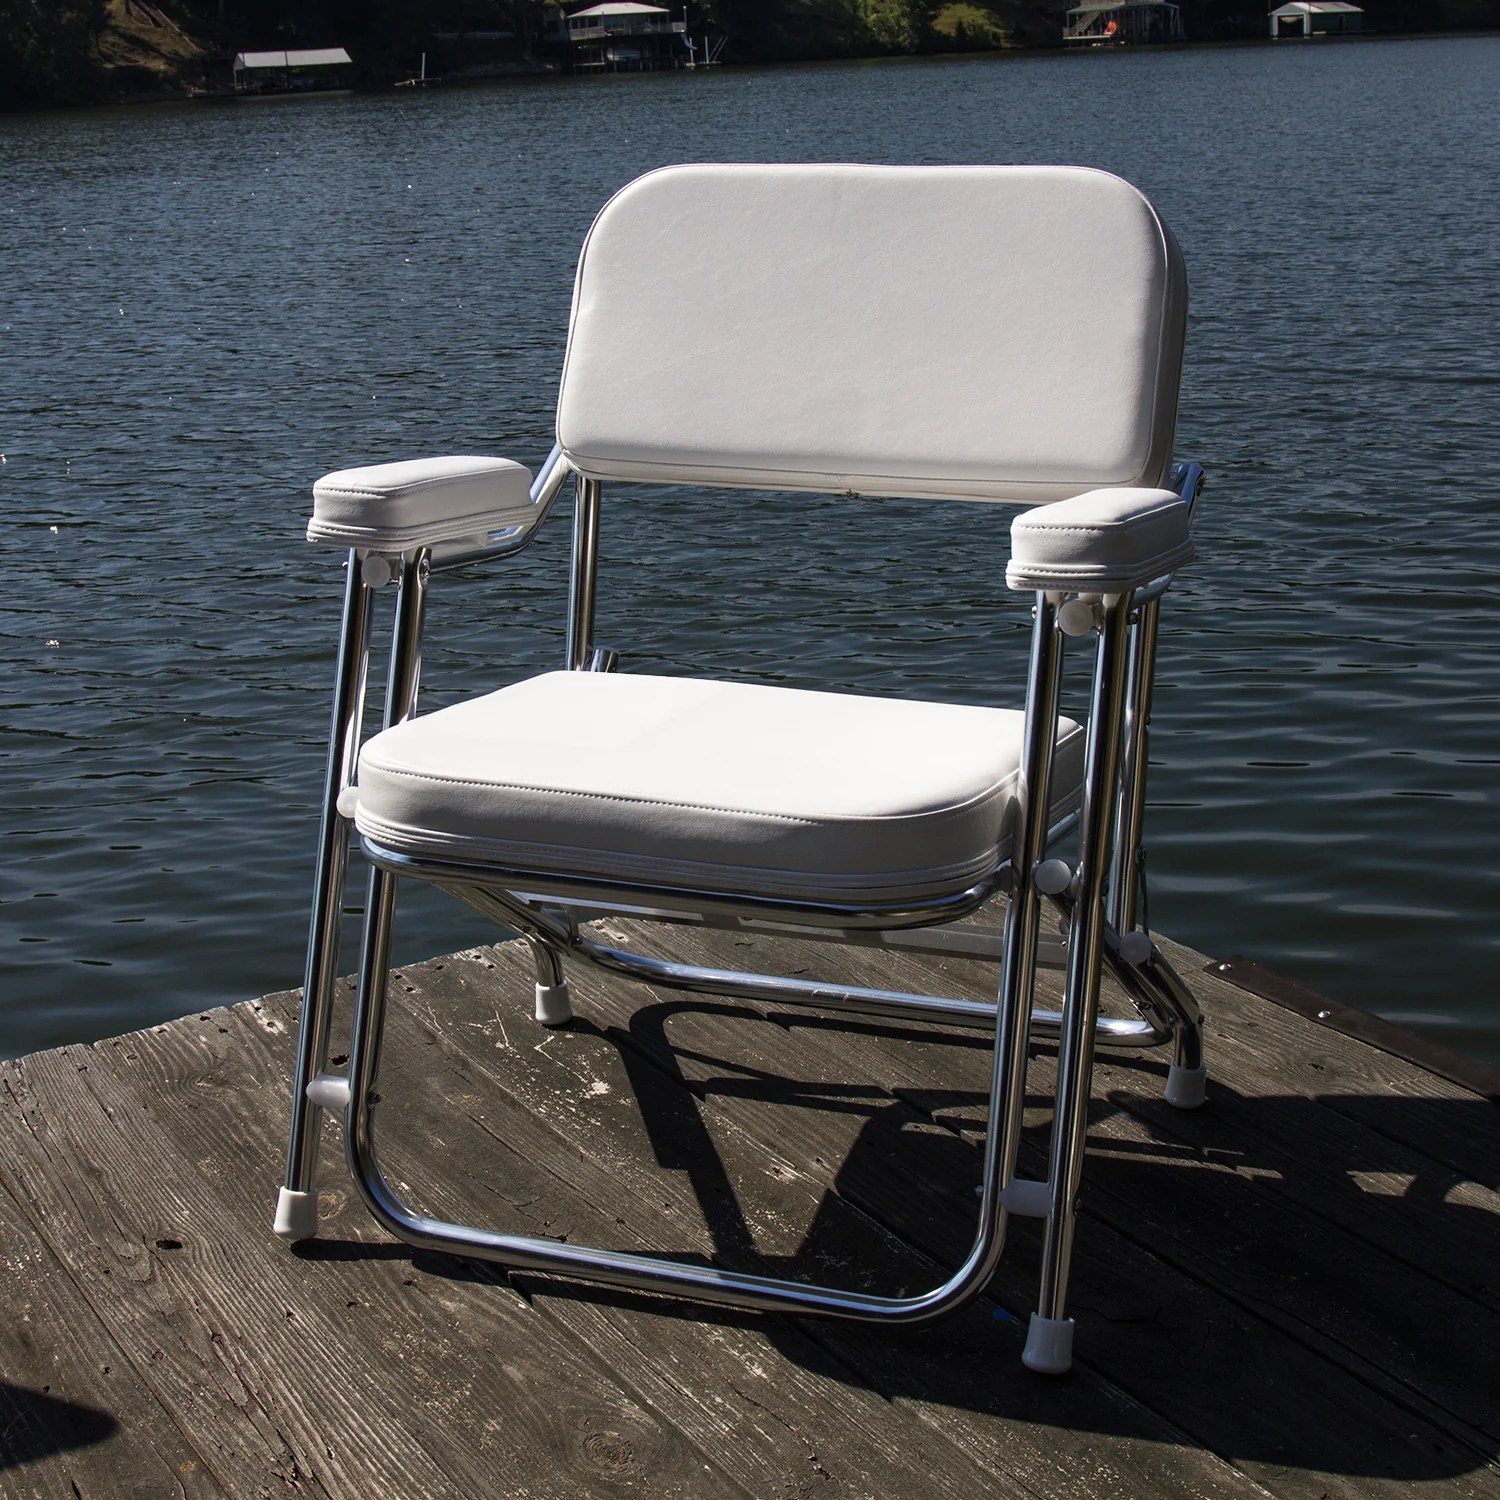 boat chairs folding deck walmart office wise 3316 boaters value chair seats